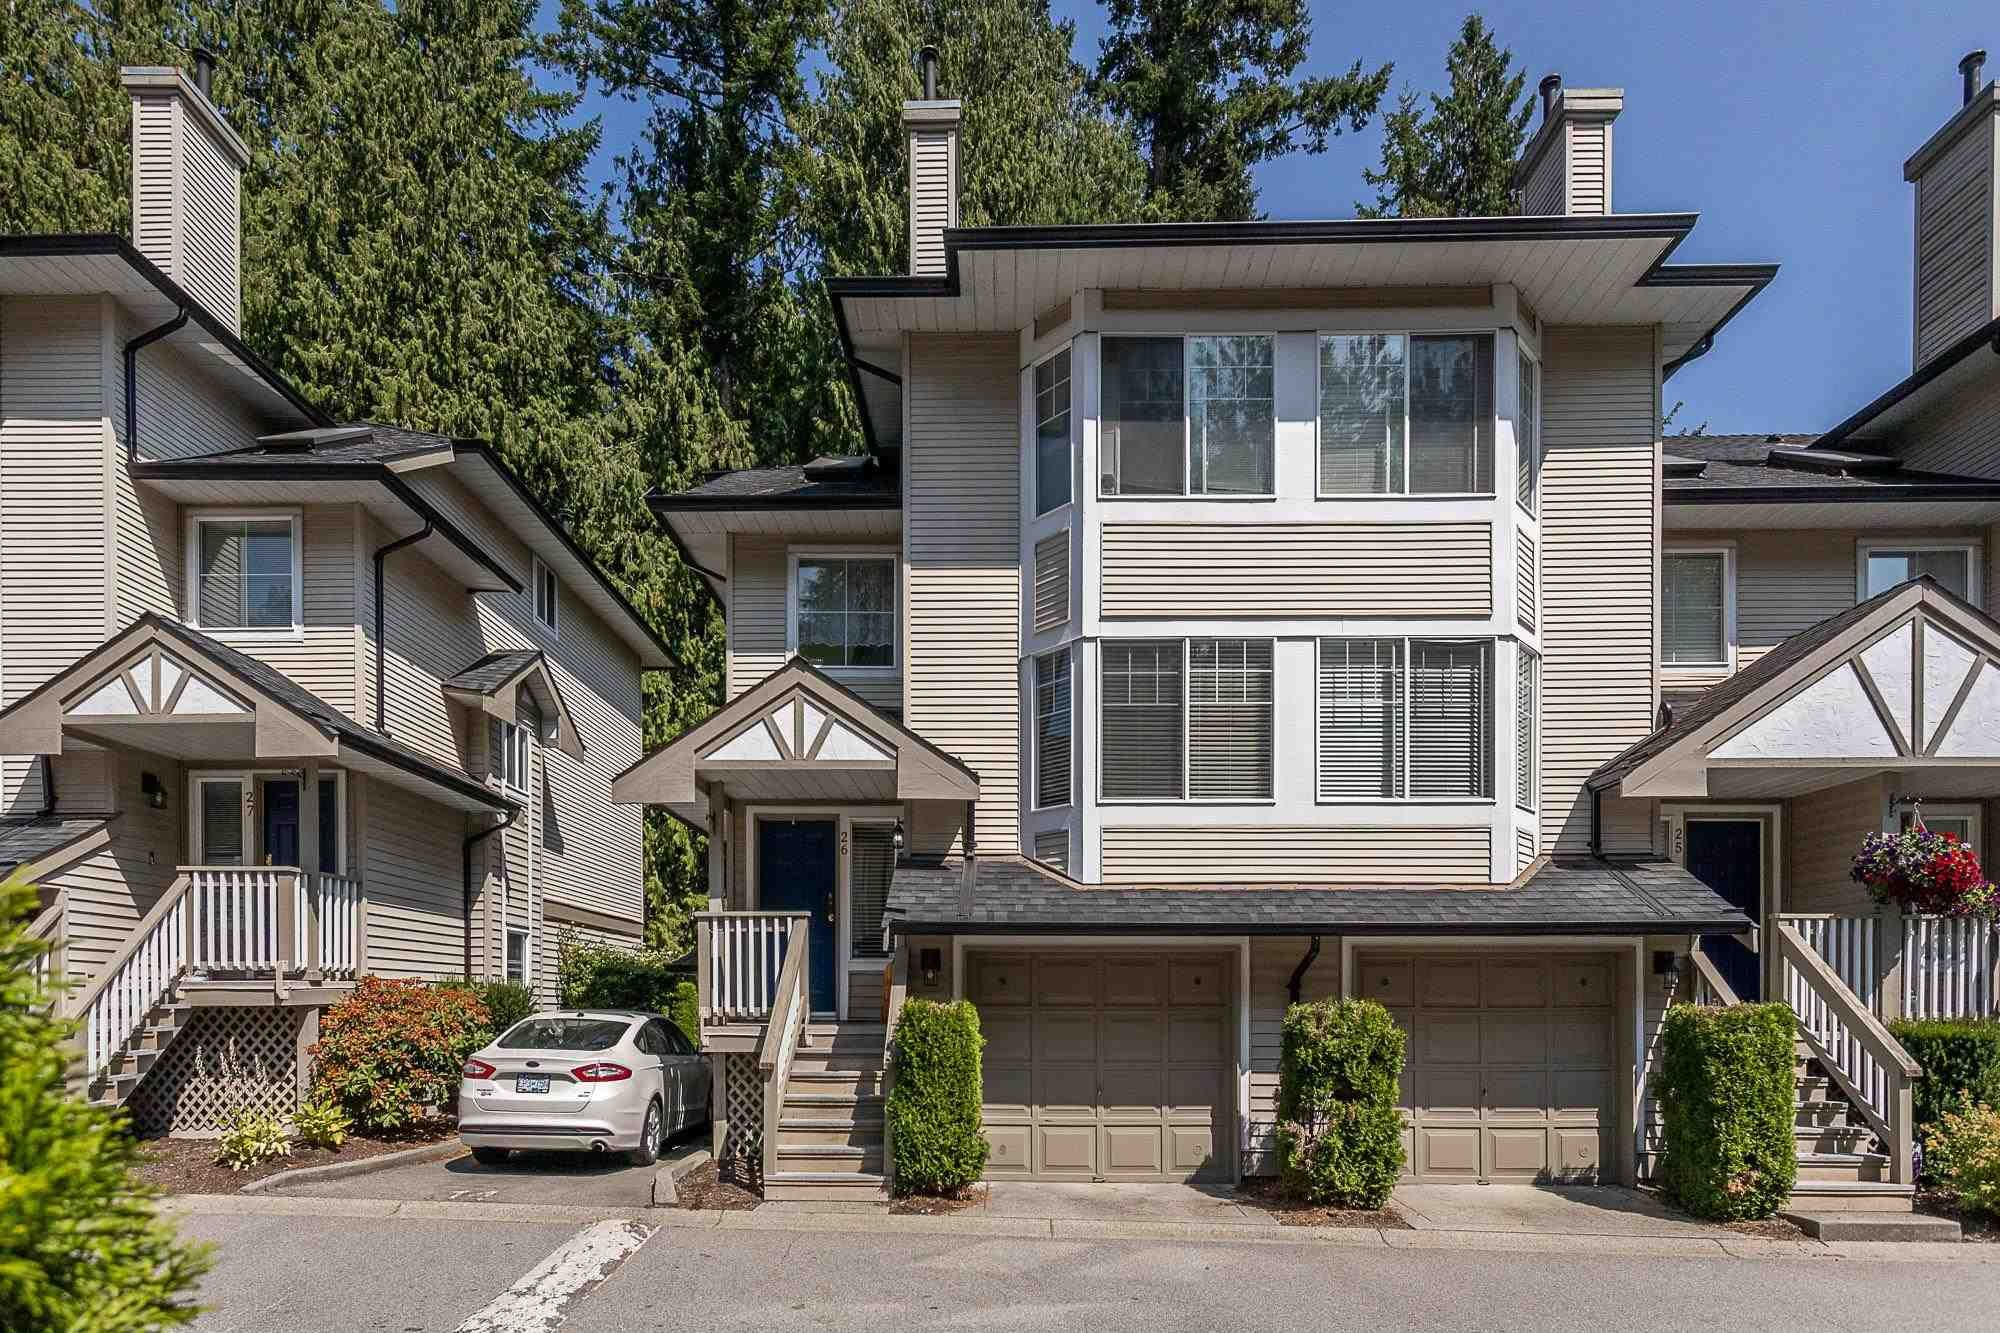 """Main Photo: 26 7640 BLOTT Street in Mission: Mission BC Townhouse for sale in """"Amberlea"""" : MLS®# R2606249"""